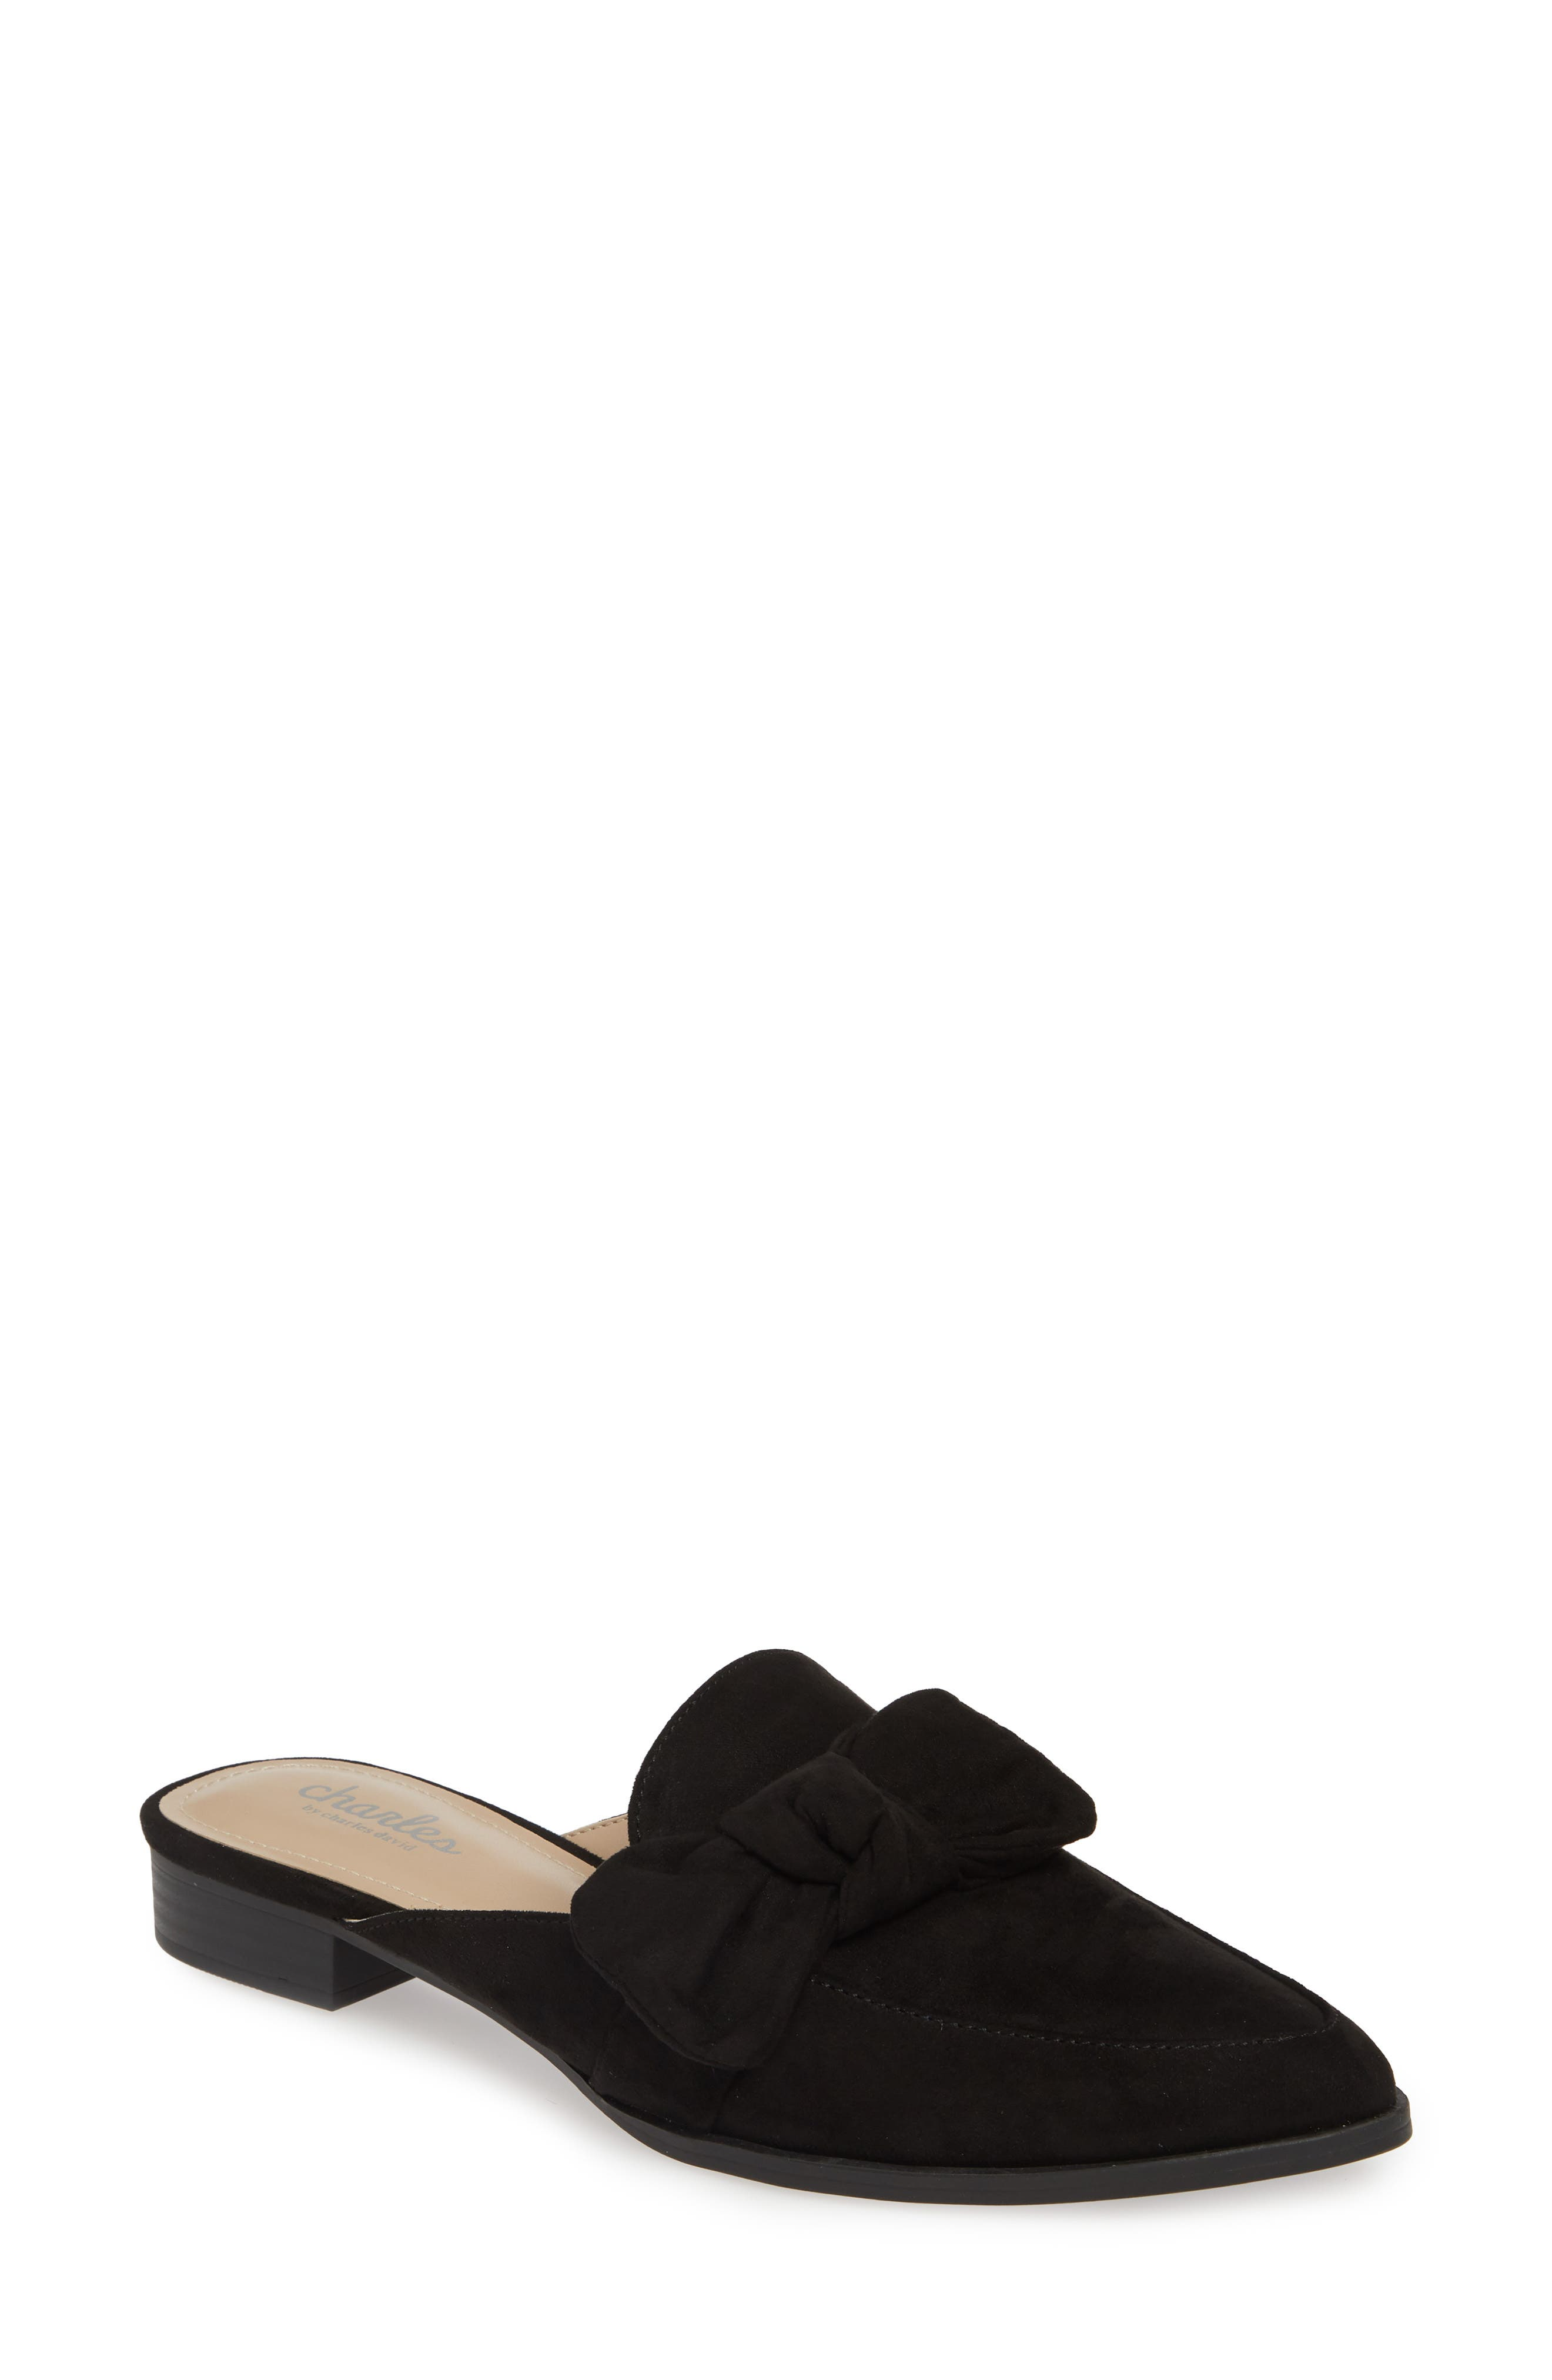 CHARLES BY CHARLES DAVID Essence Mule, Main, color, BLACK FABRIC